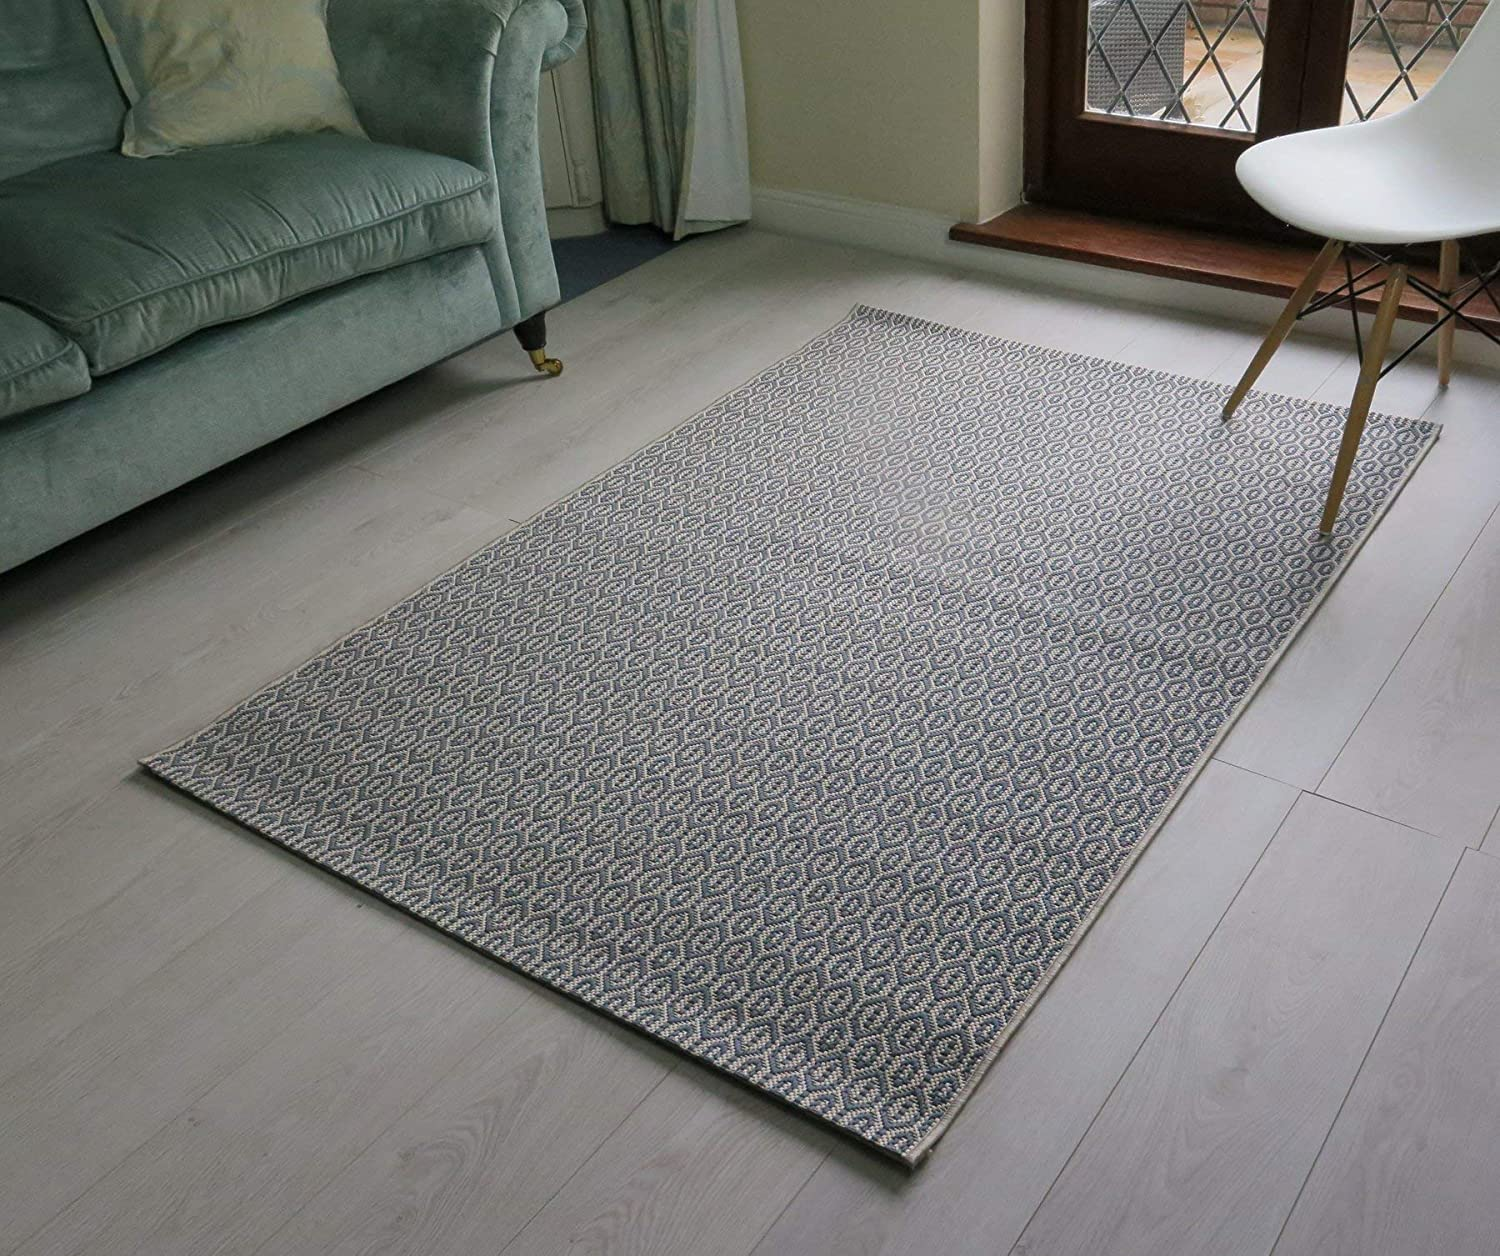 Aspect Linley Geometric Chainmaille Design Flatweave Indoor Outdoor Rug Cream And Teal 120x170cm 120 X 170 Cm Amazon Co Uk Kitchen Home